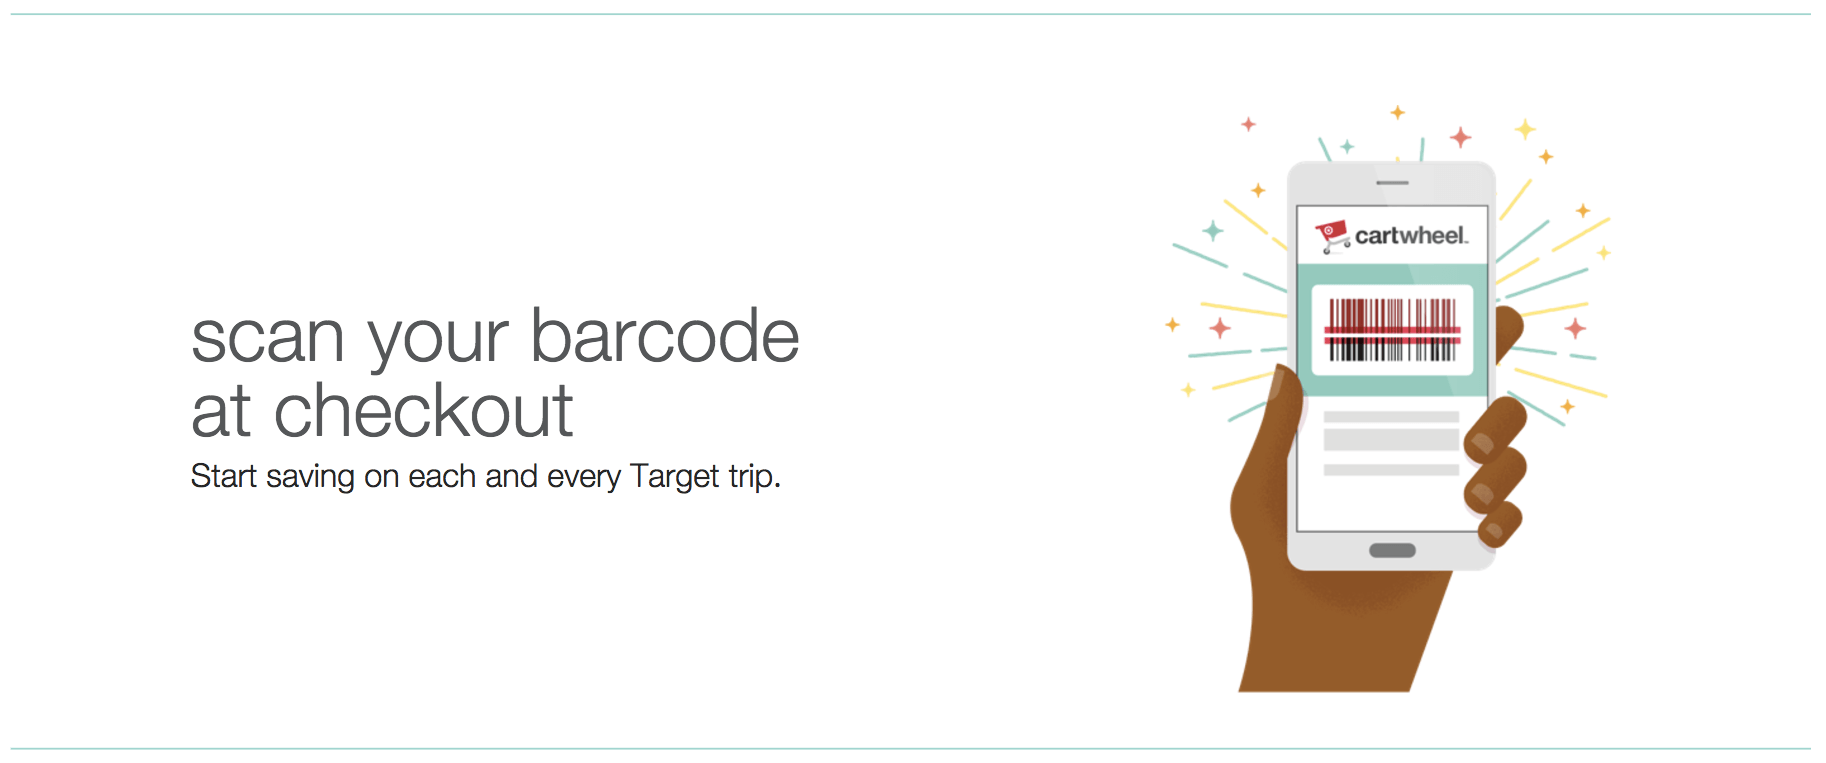 Cartwheel (From Target's REDcard program) lets customers scan discounts from their phones